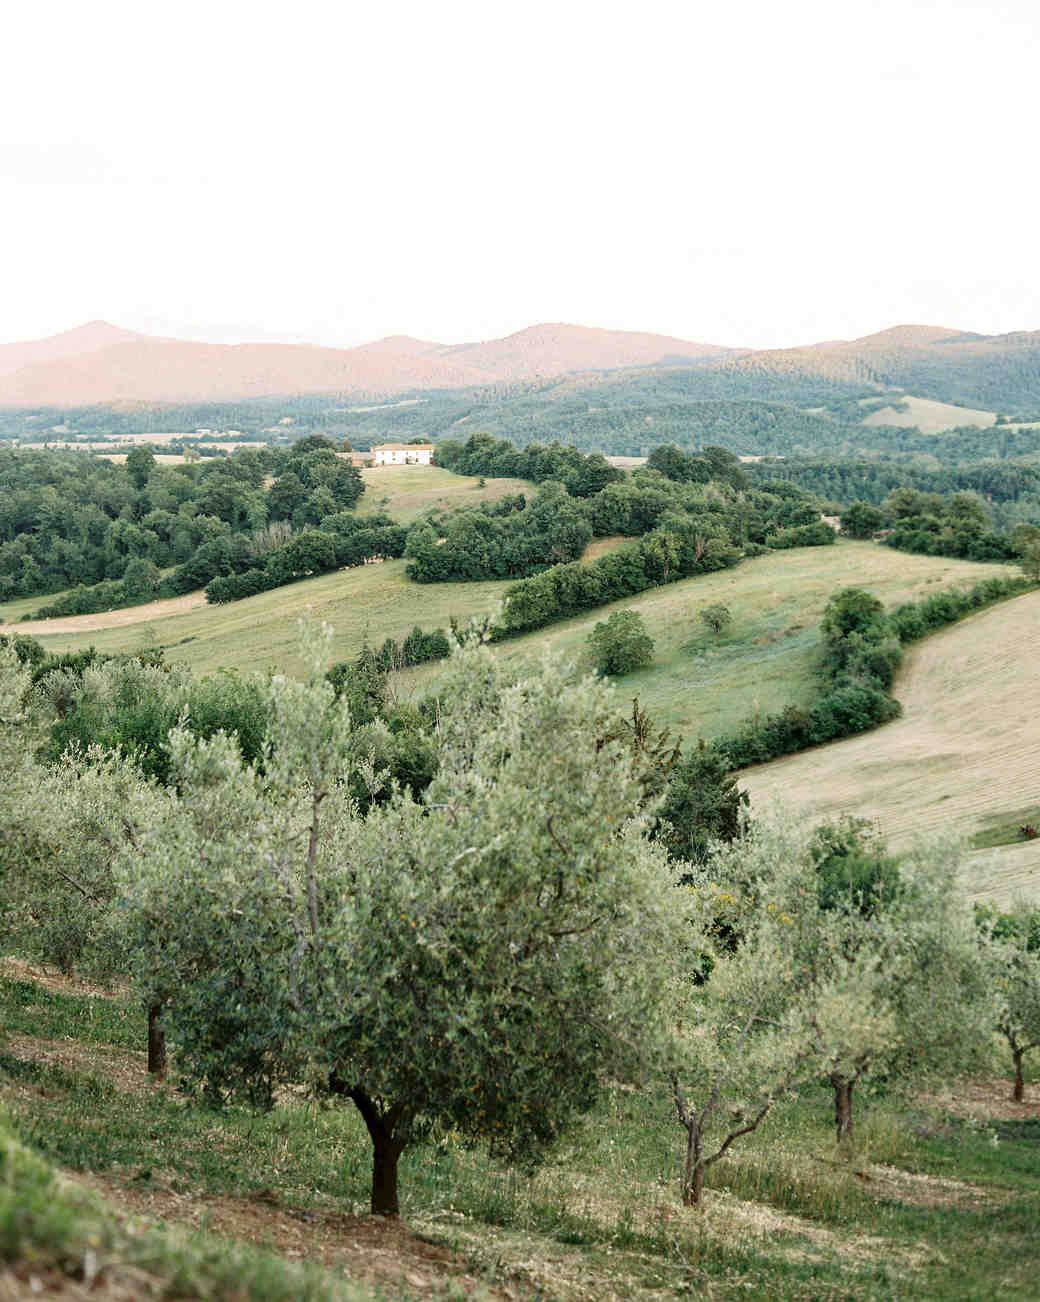 alexis zach wedding italy venue countryside